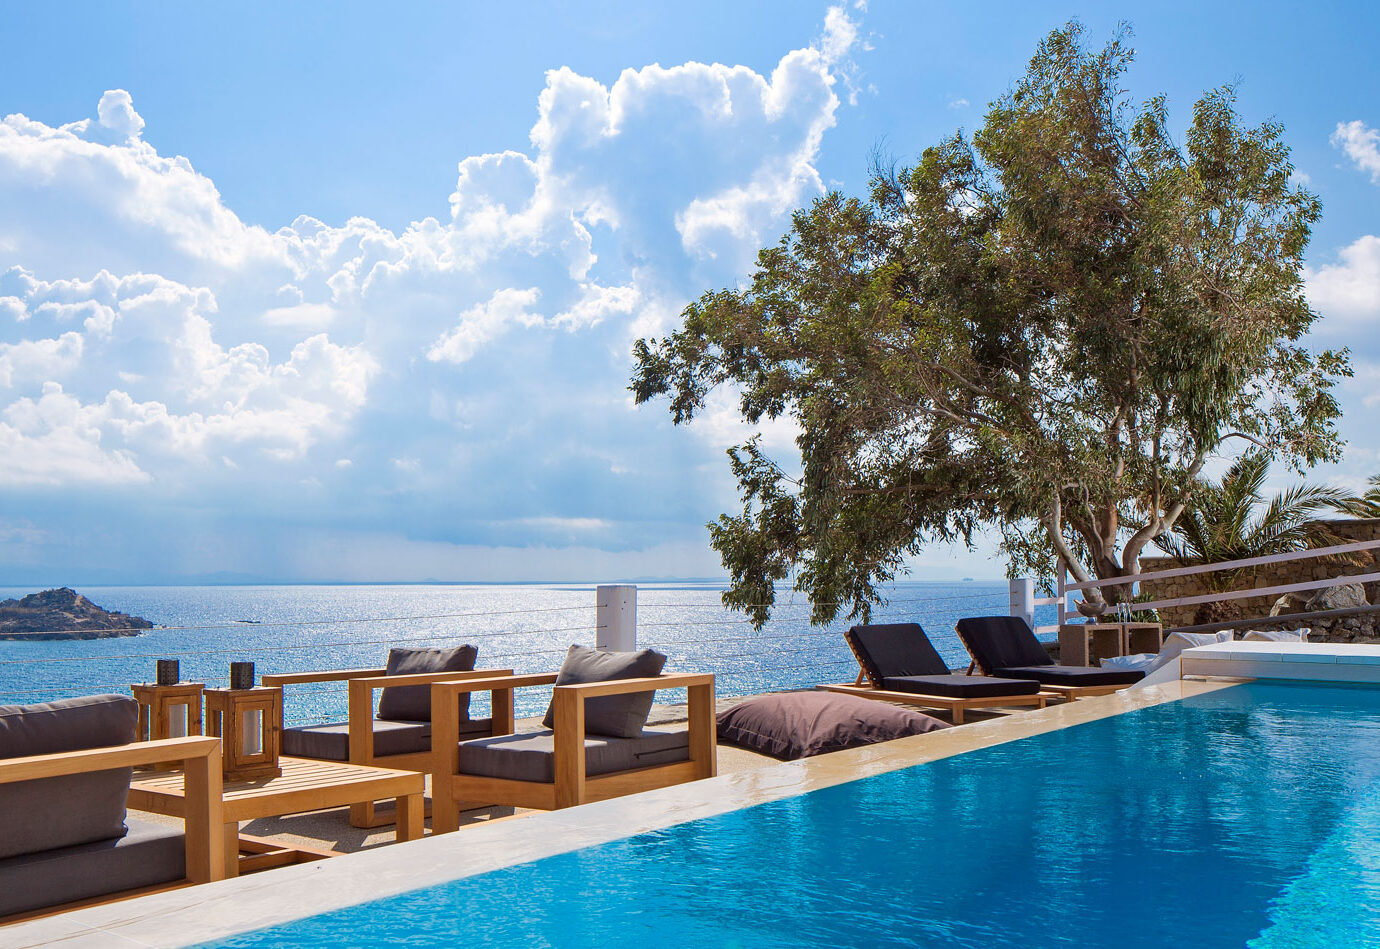 View from the pool at Myconian Ambassador Hotel